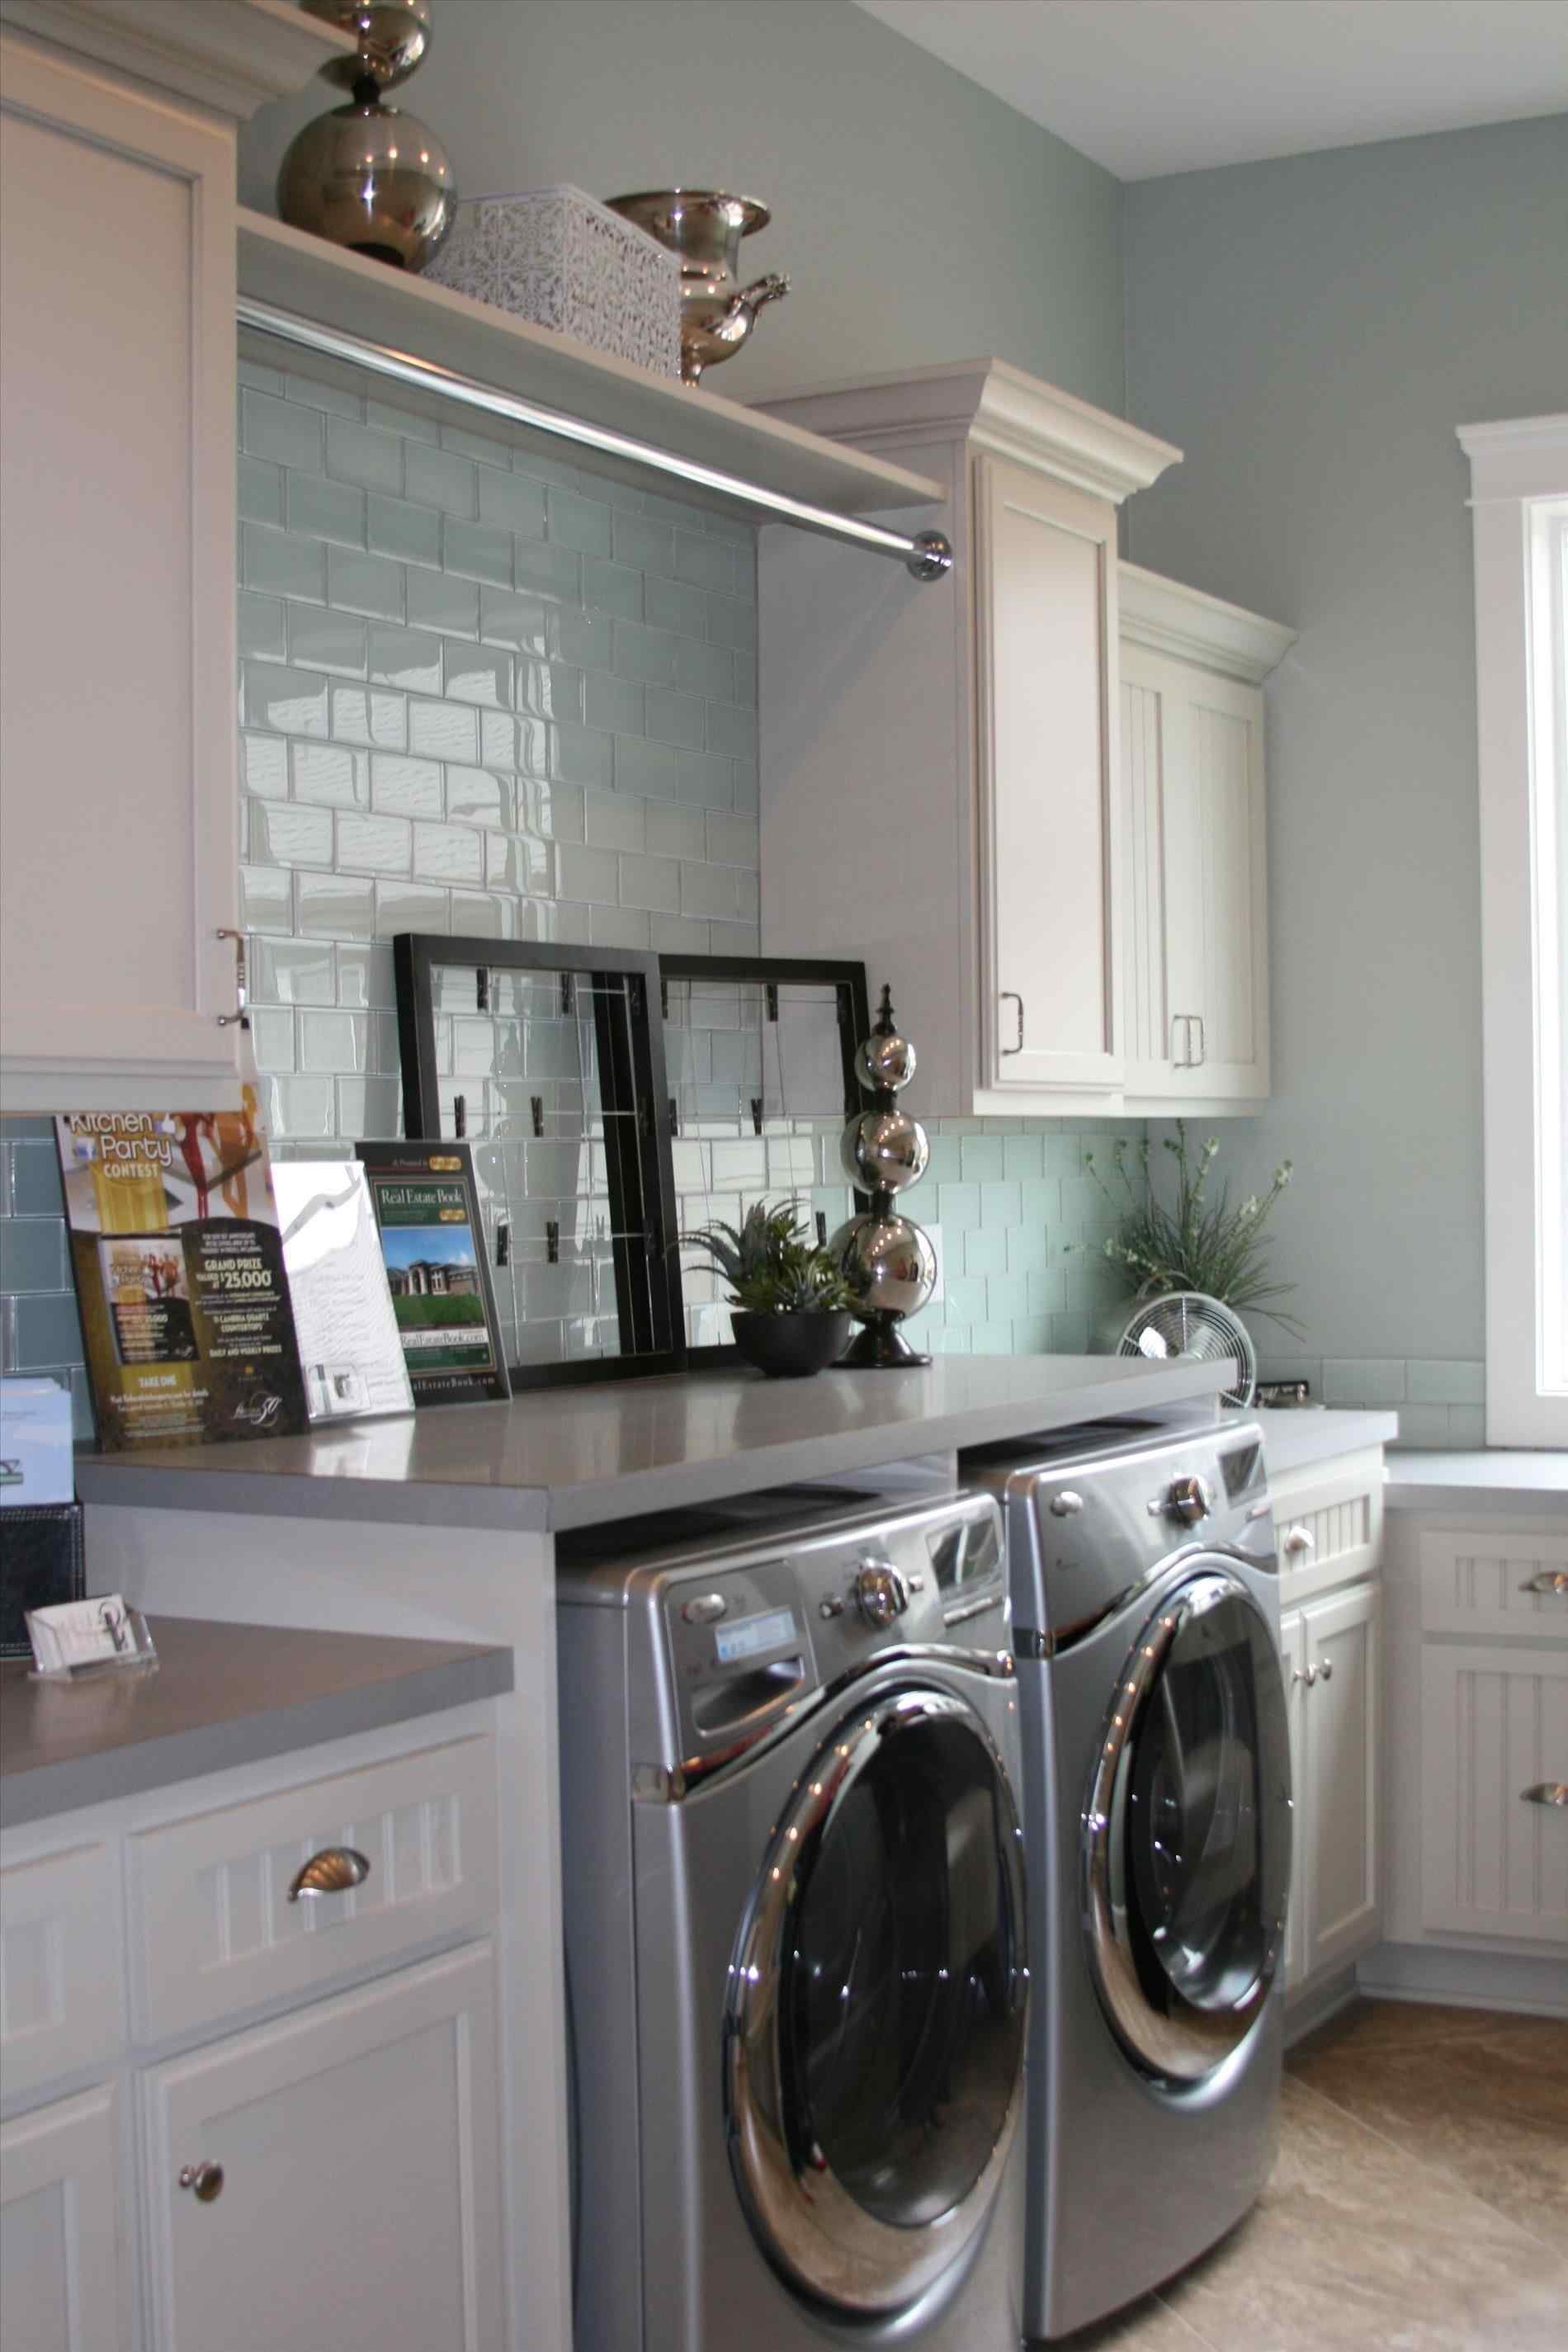 25 Best Laundry Room Design Ideas on Laundry Room Decor Ideas  id=76444